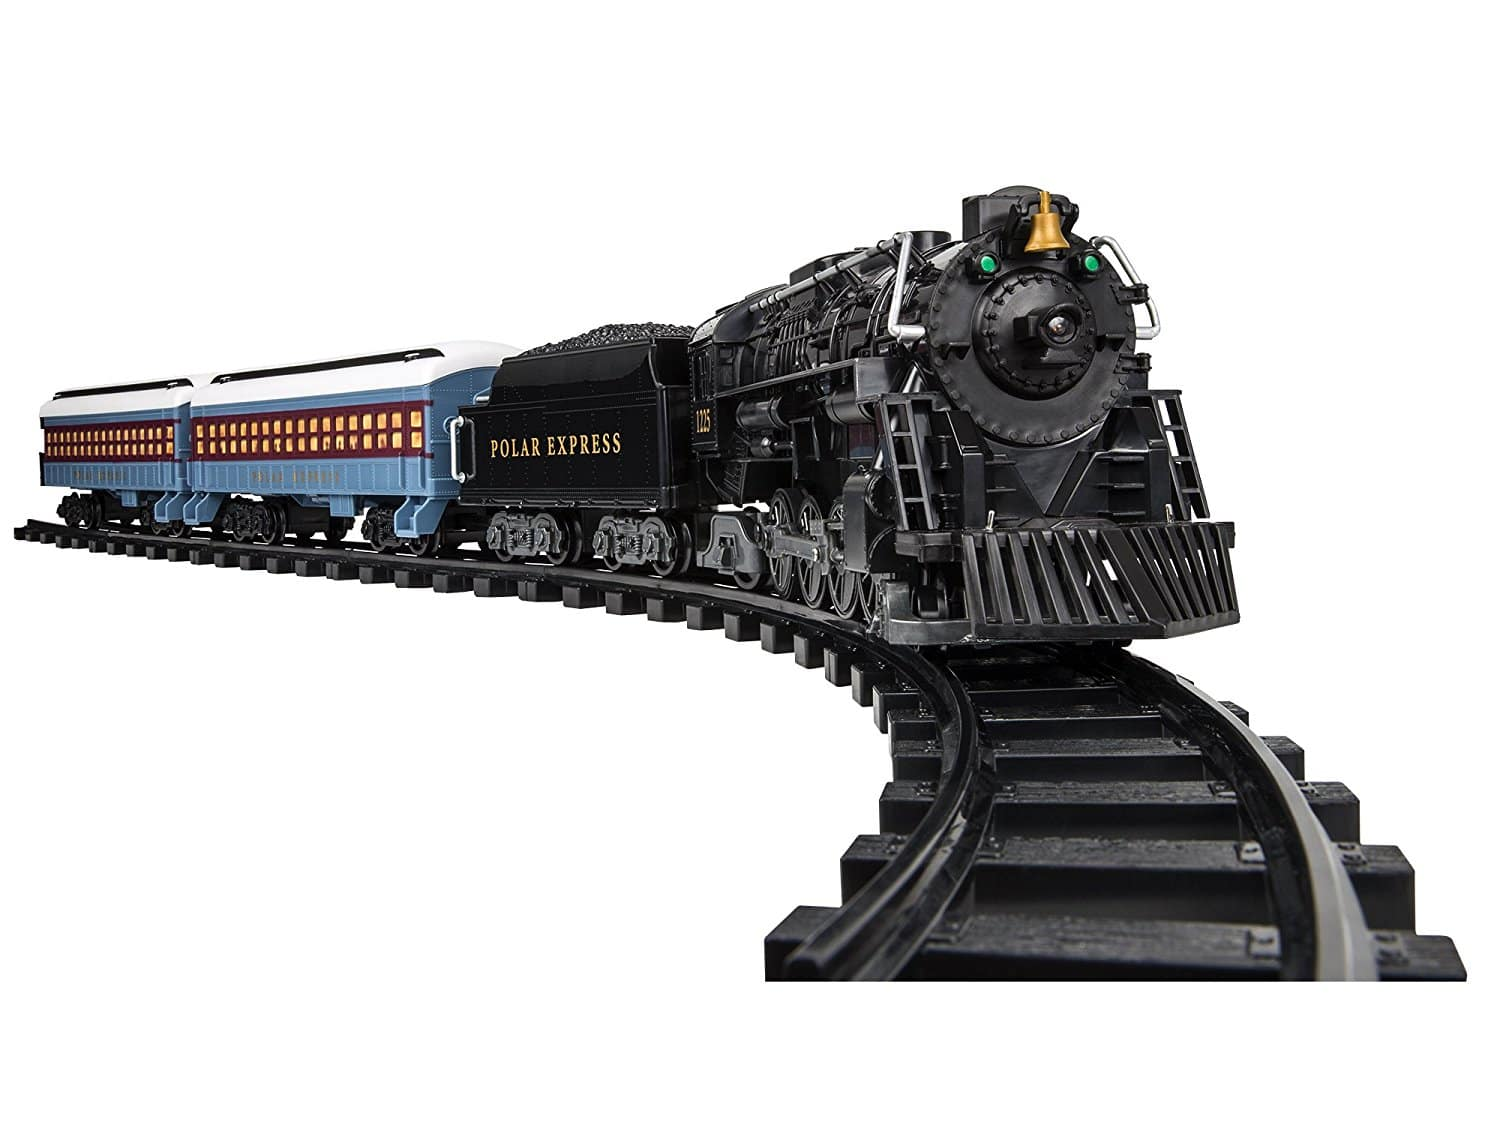 Lionel Polar Express Ready to Play Train Set $52.49 + Free Shipping